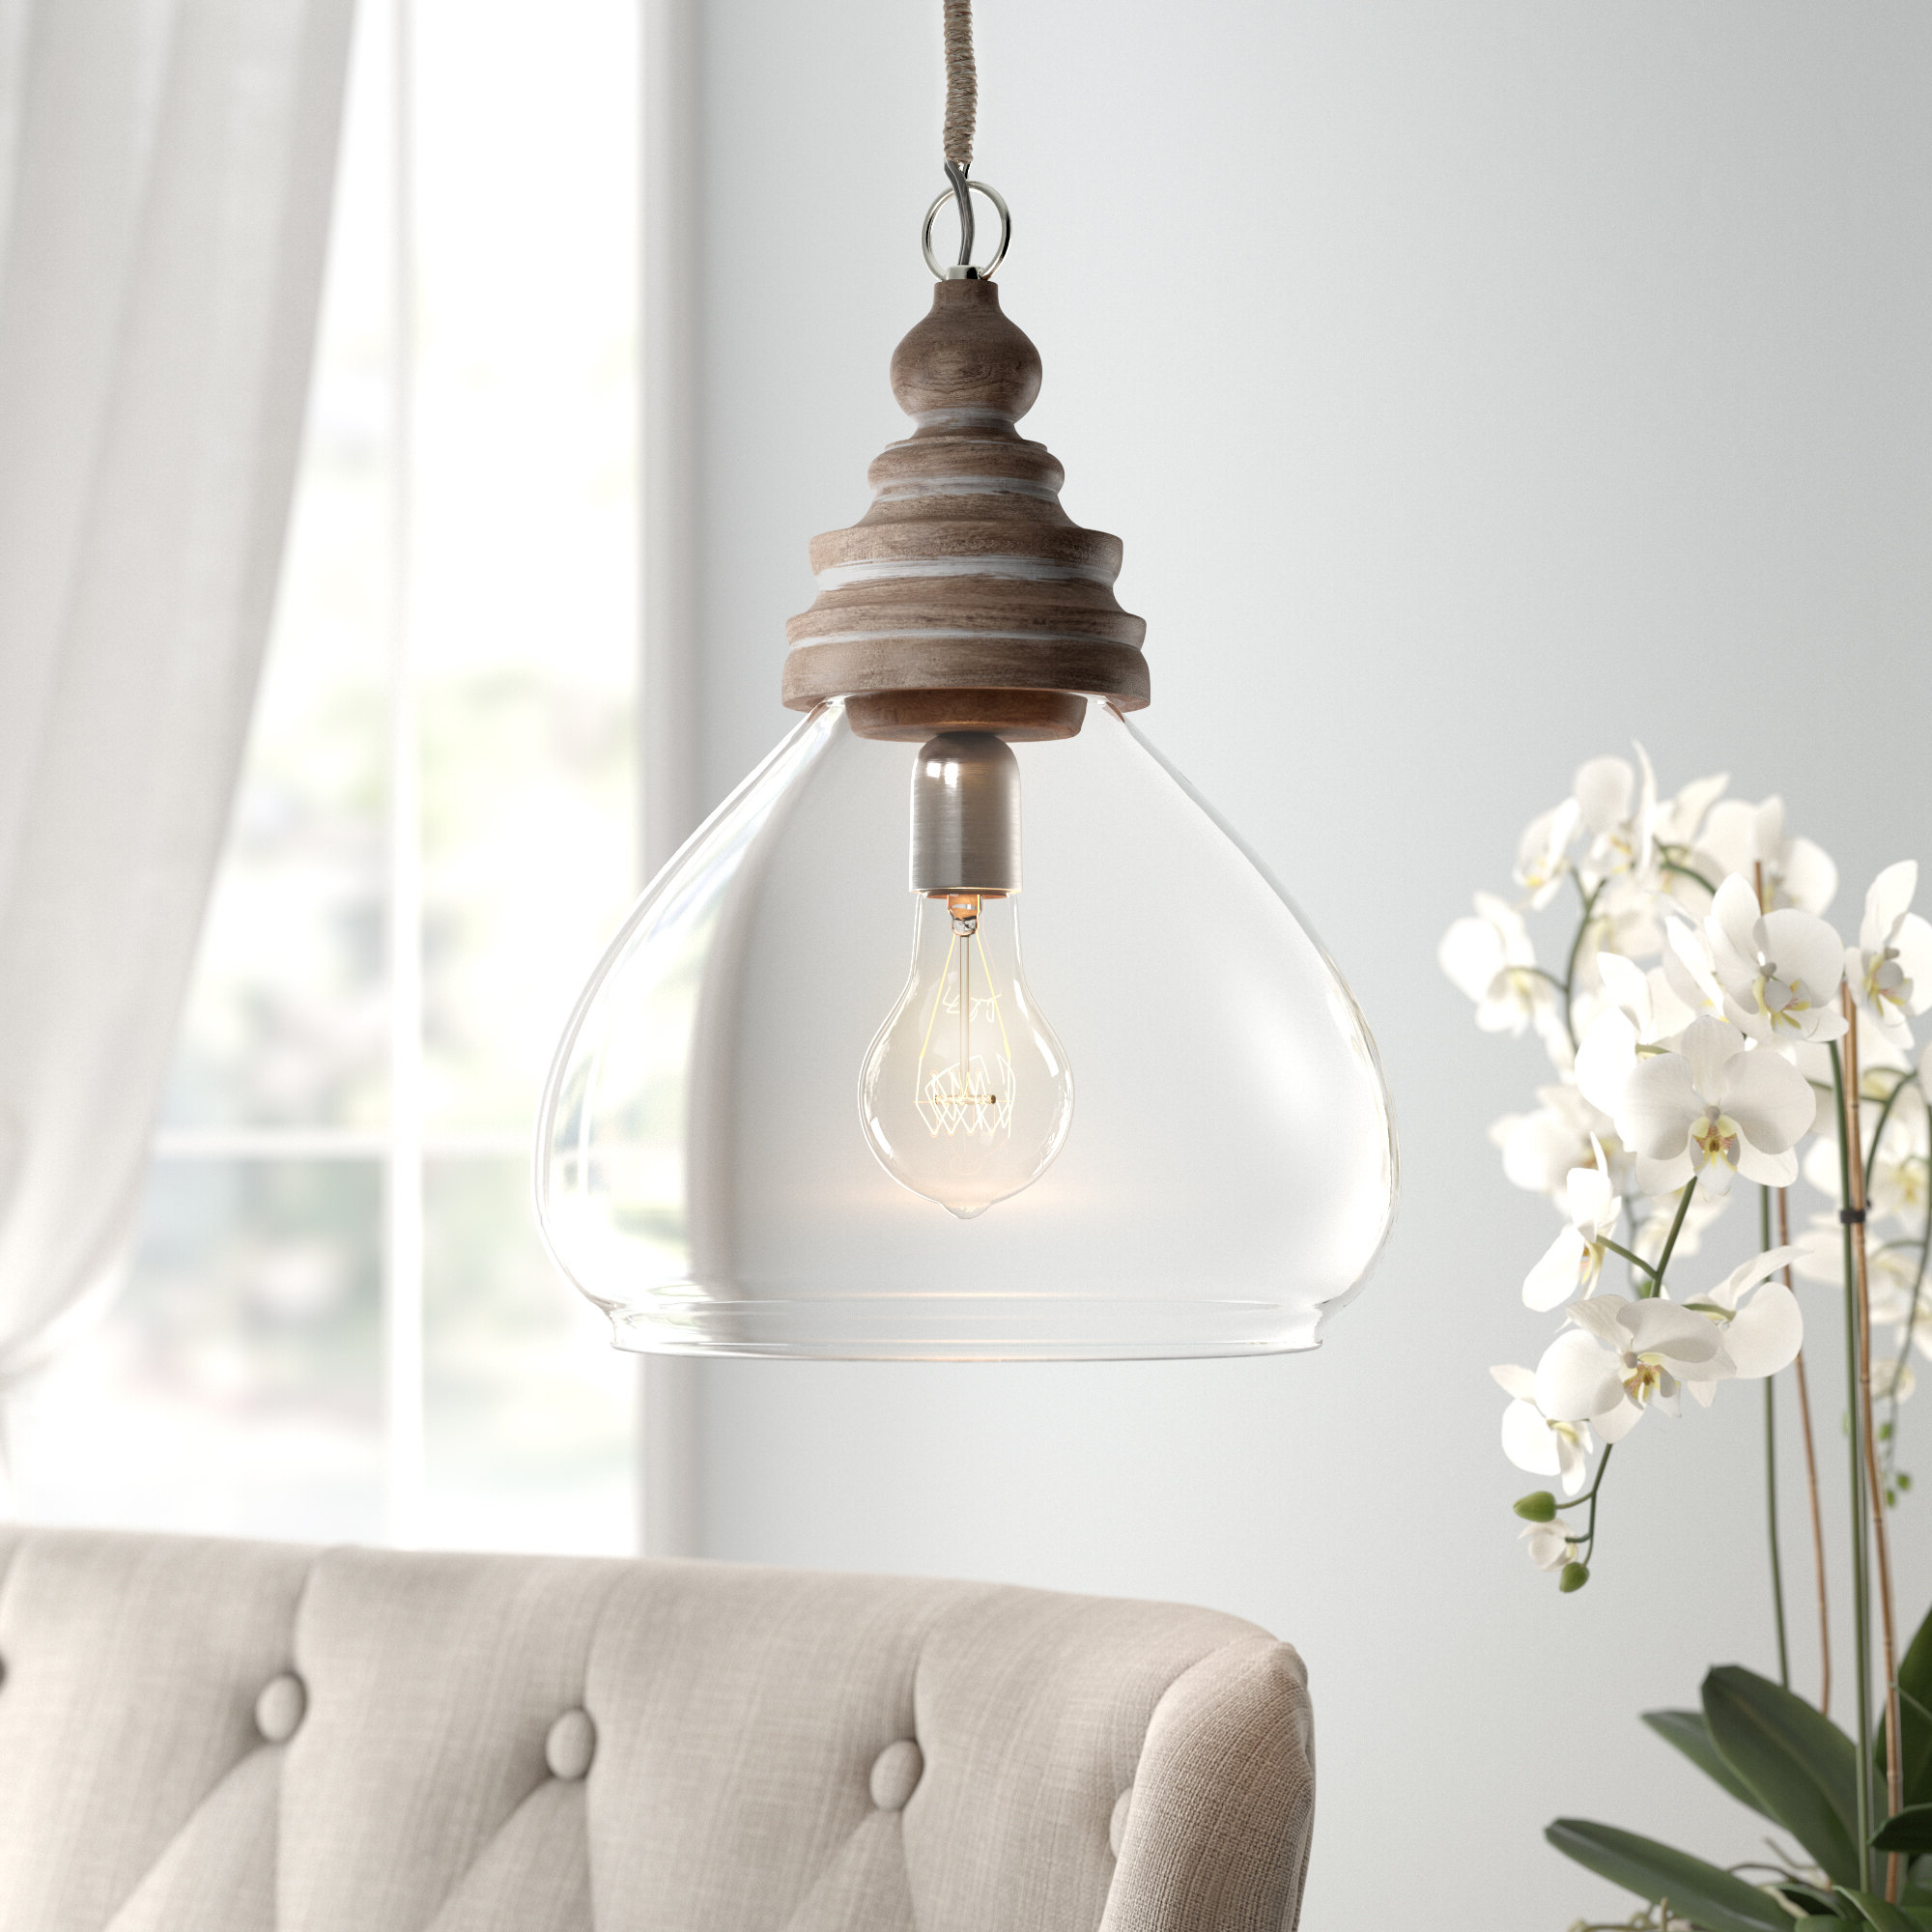 Brisa 1 Light Single Dome Pendant With Regard To Best And Newest Wentzville 1 Light Single Bell Pendants (View 2 of 20)